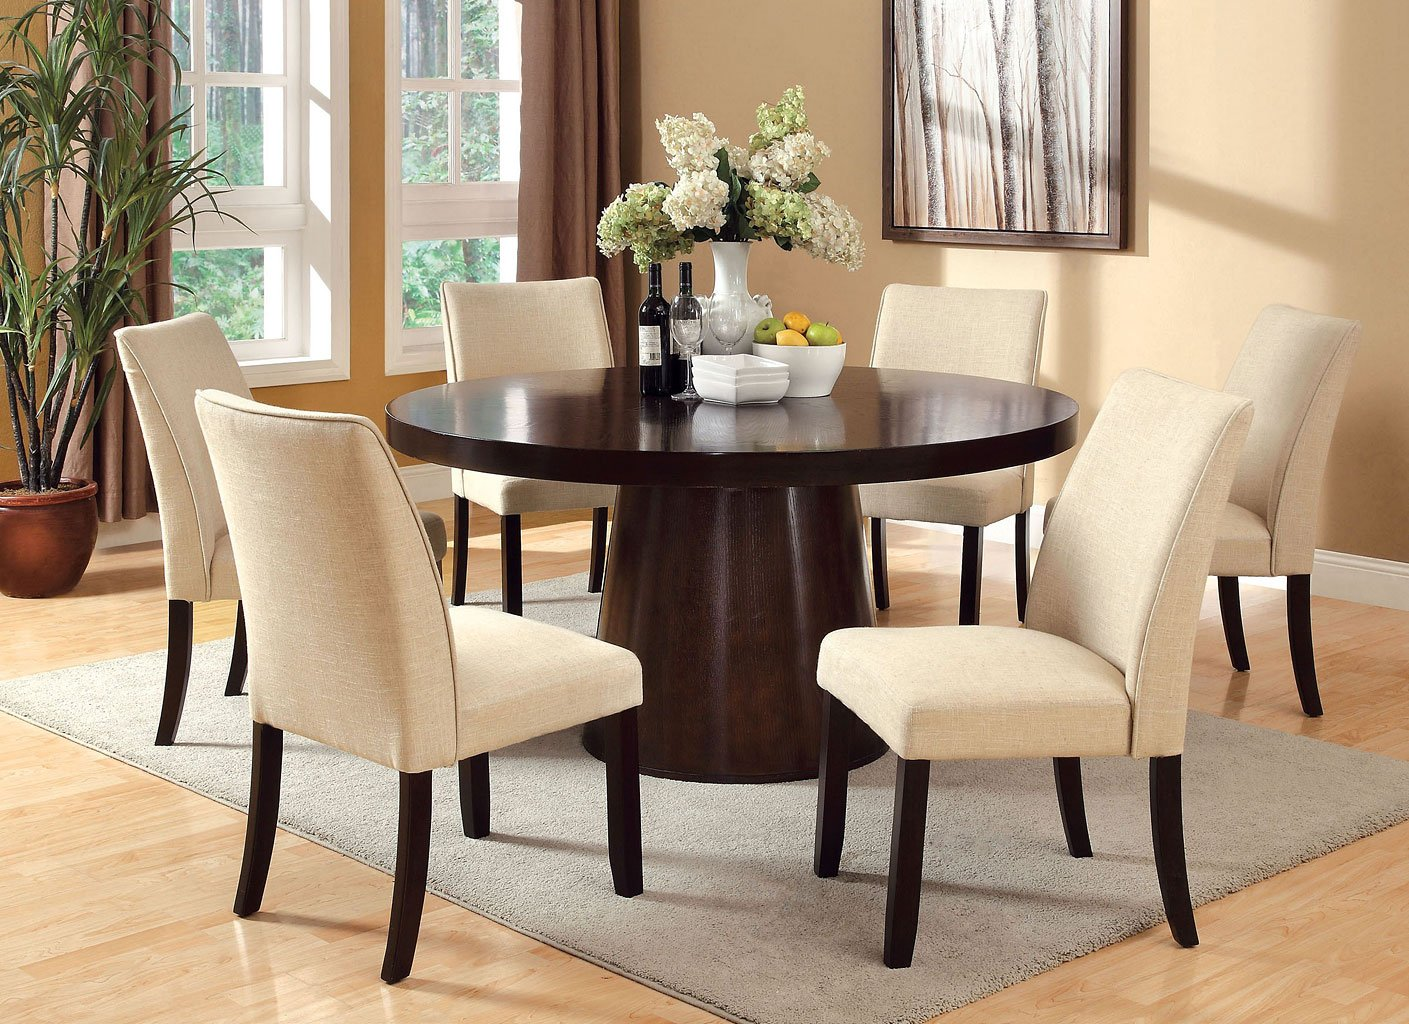 Lounche Dining Set Havana Round Dining Room Set W/ Cimma Chairs - Casual